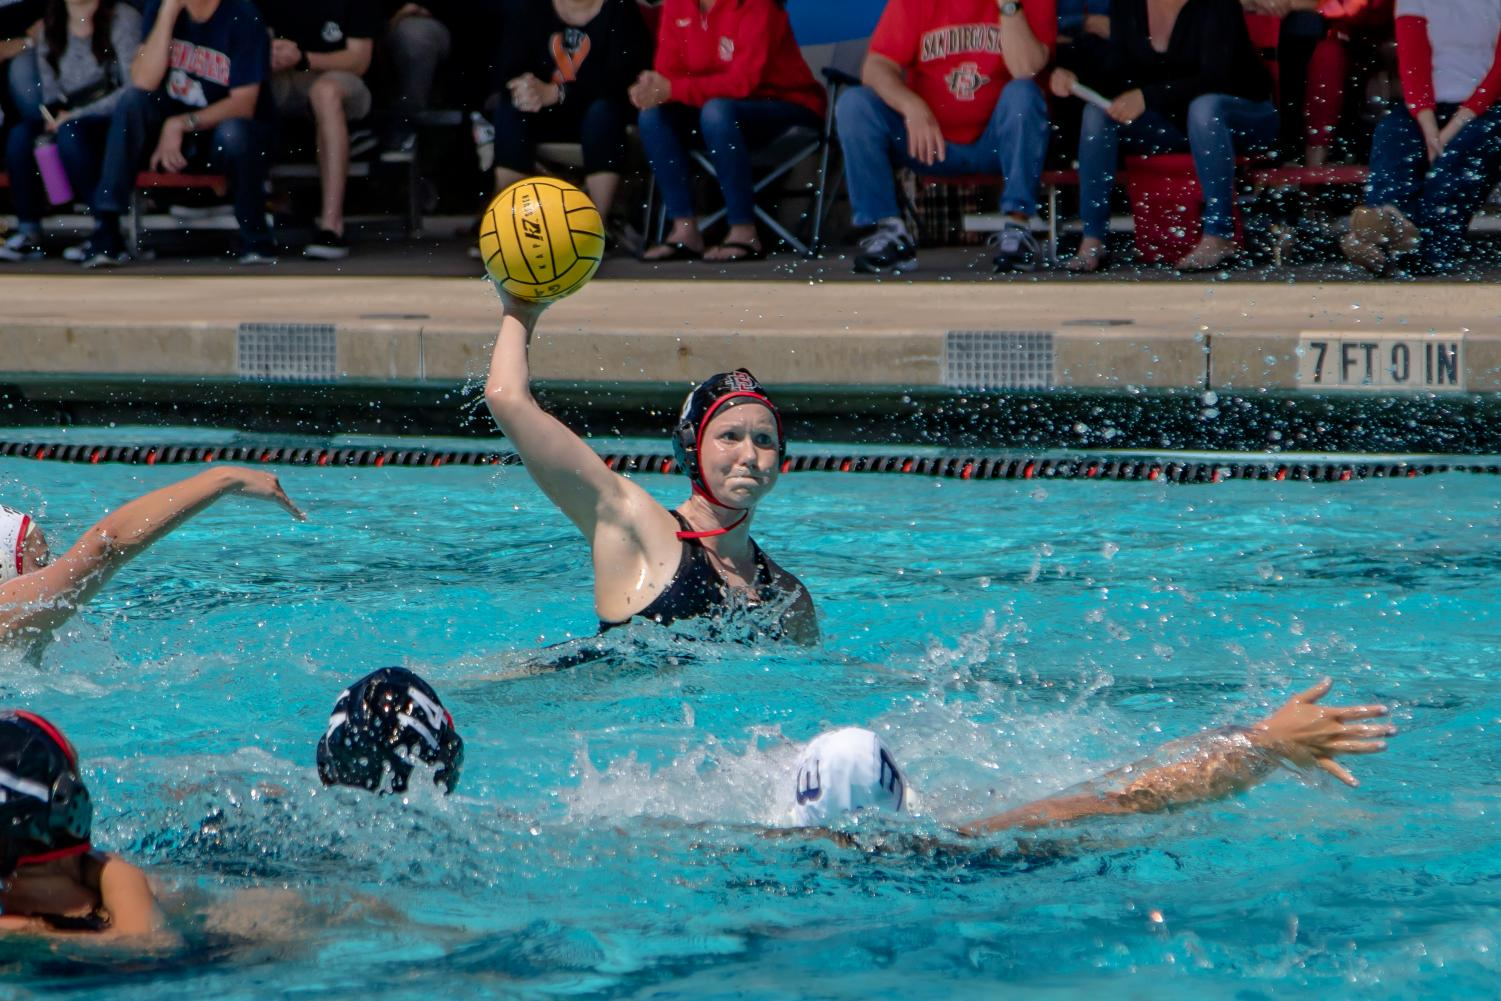 Senior utility player Lizzy Bilz holds the ball during the Aztecs 11-9 victory over Fresno State at the Aztec Aquaplex on April 8.